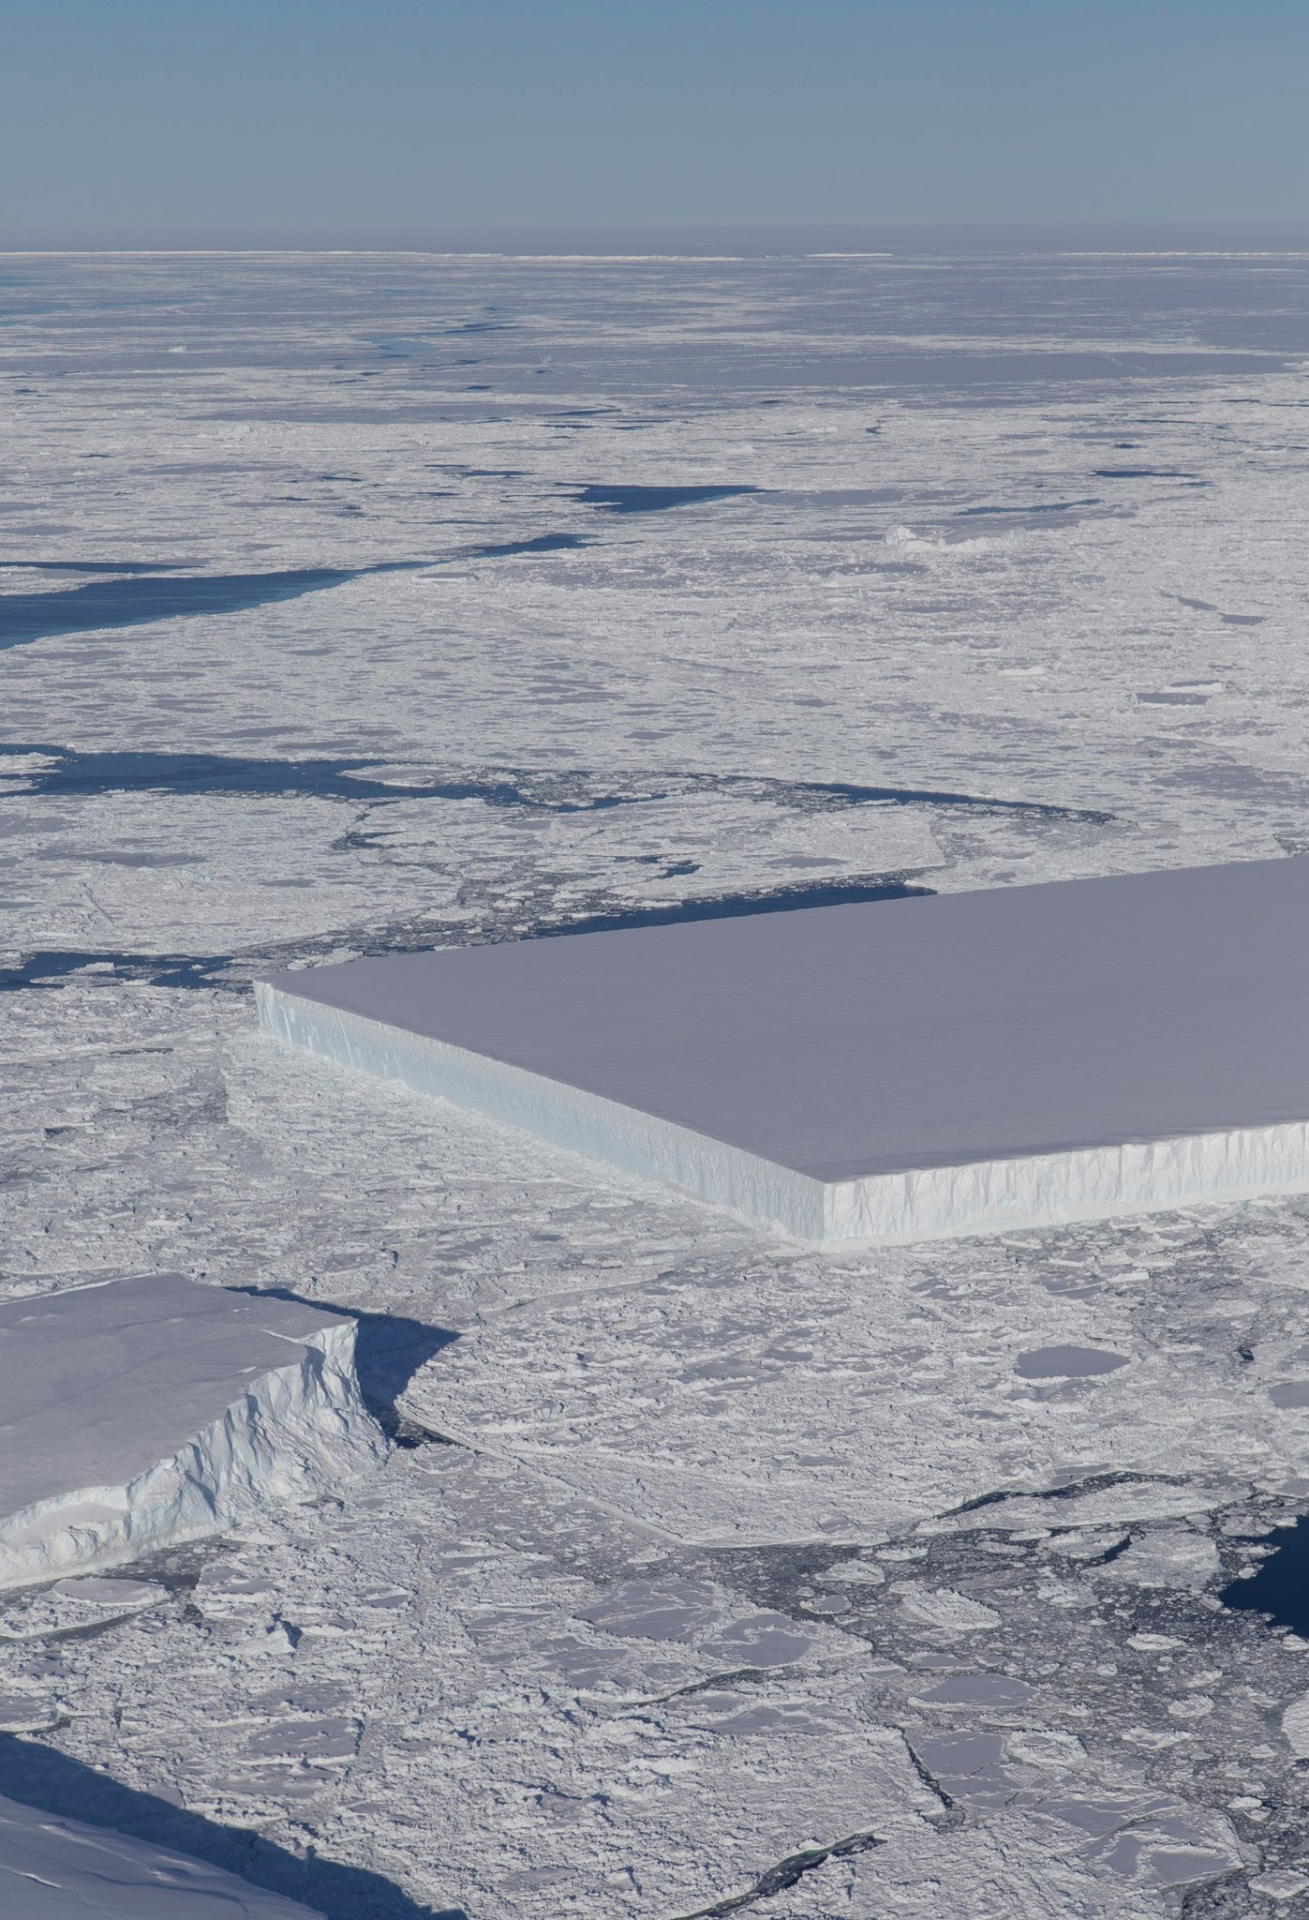 NASA figures out where weirdly square iceberg was born